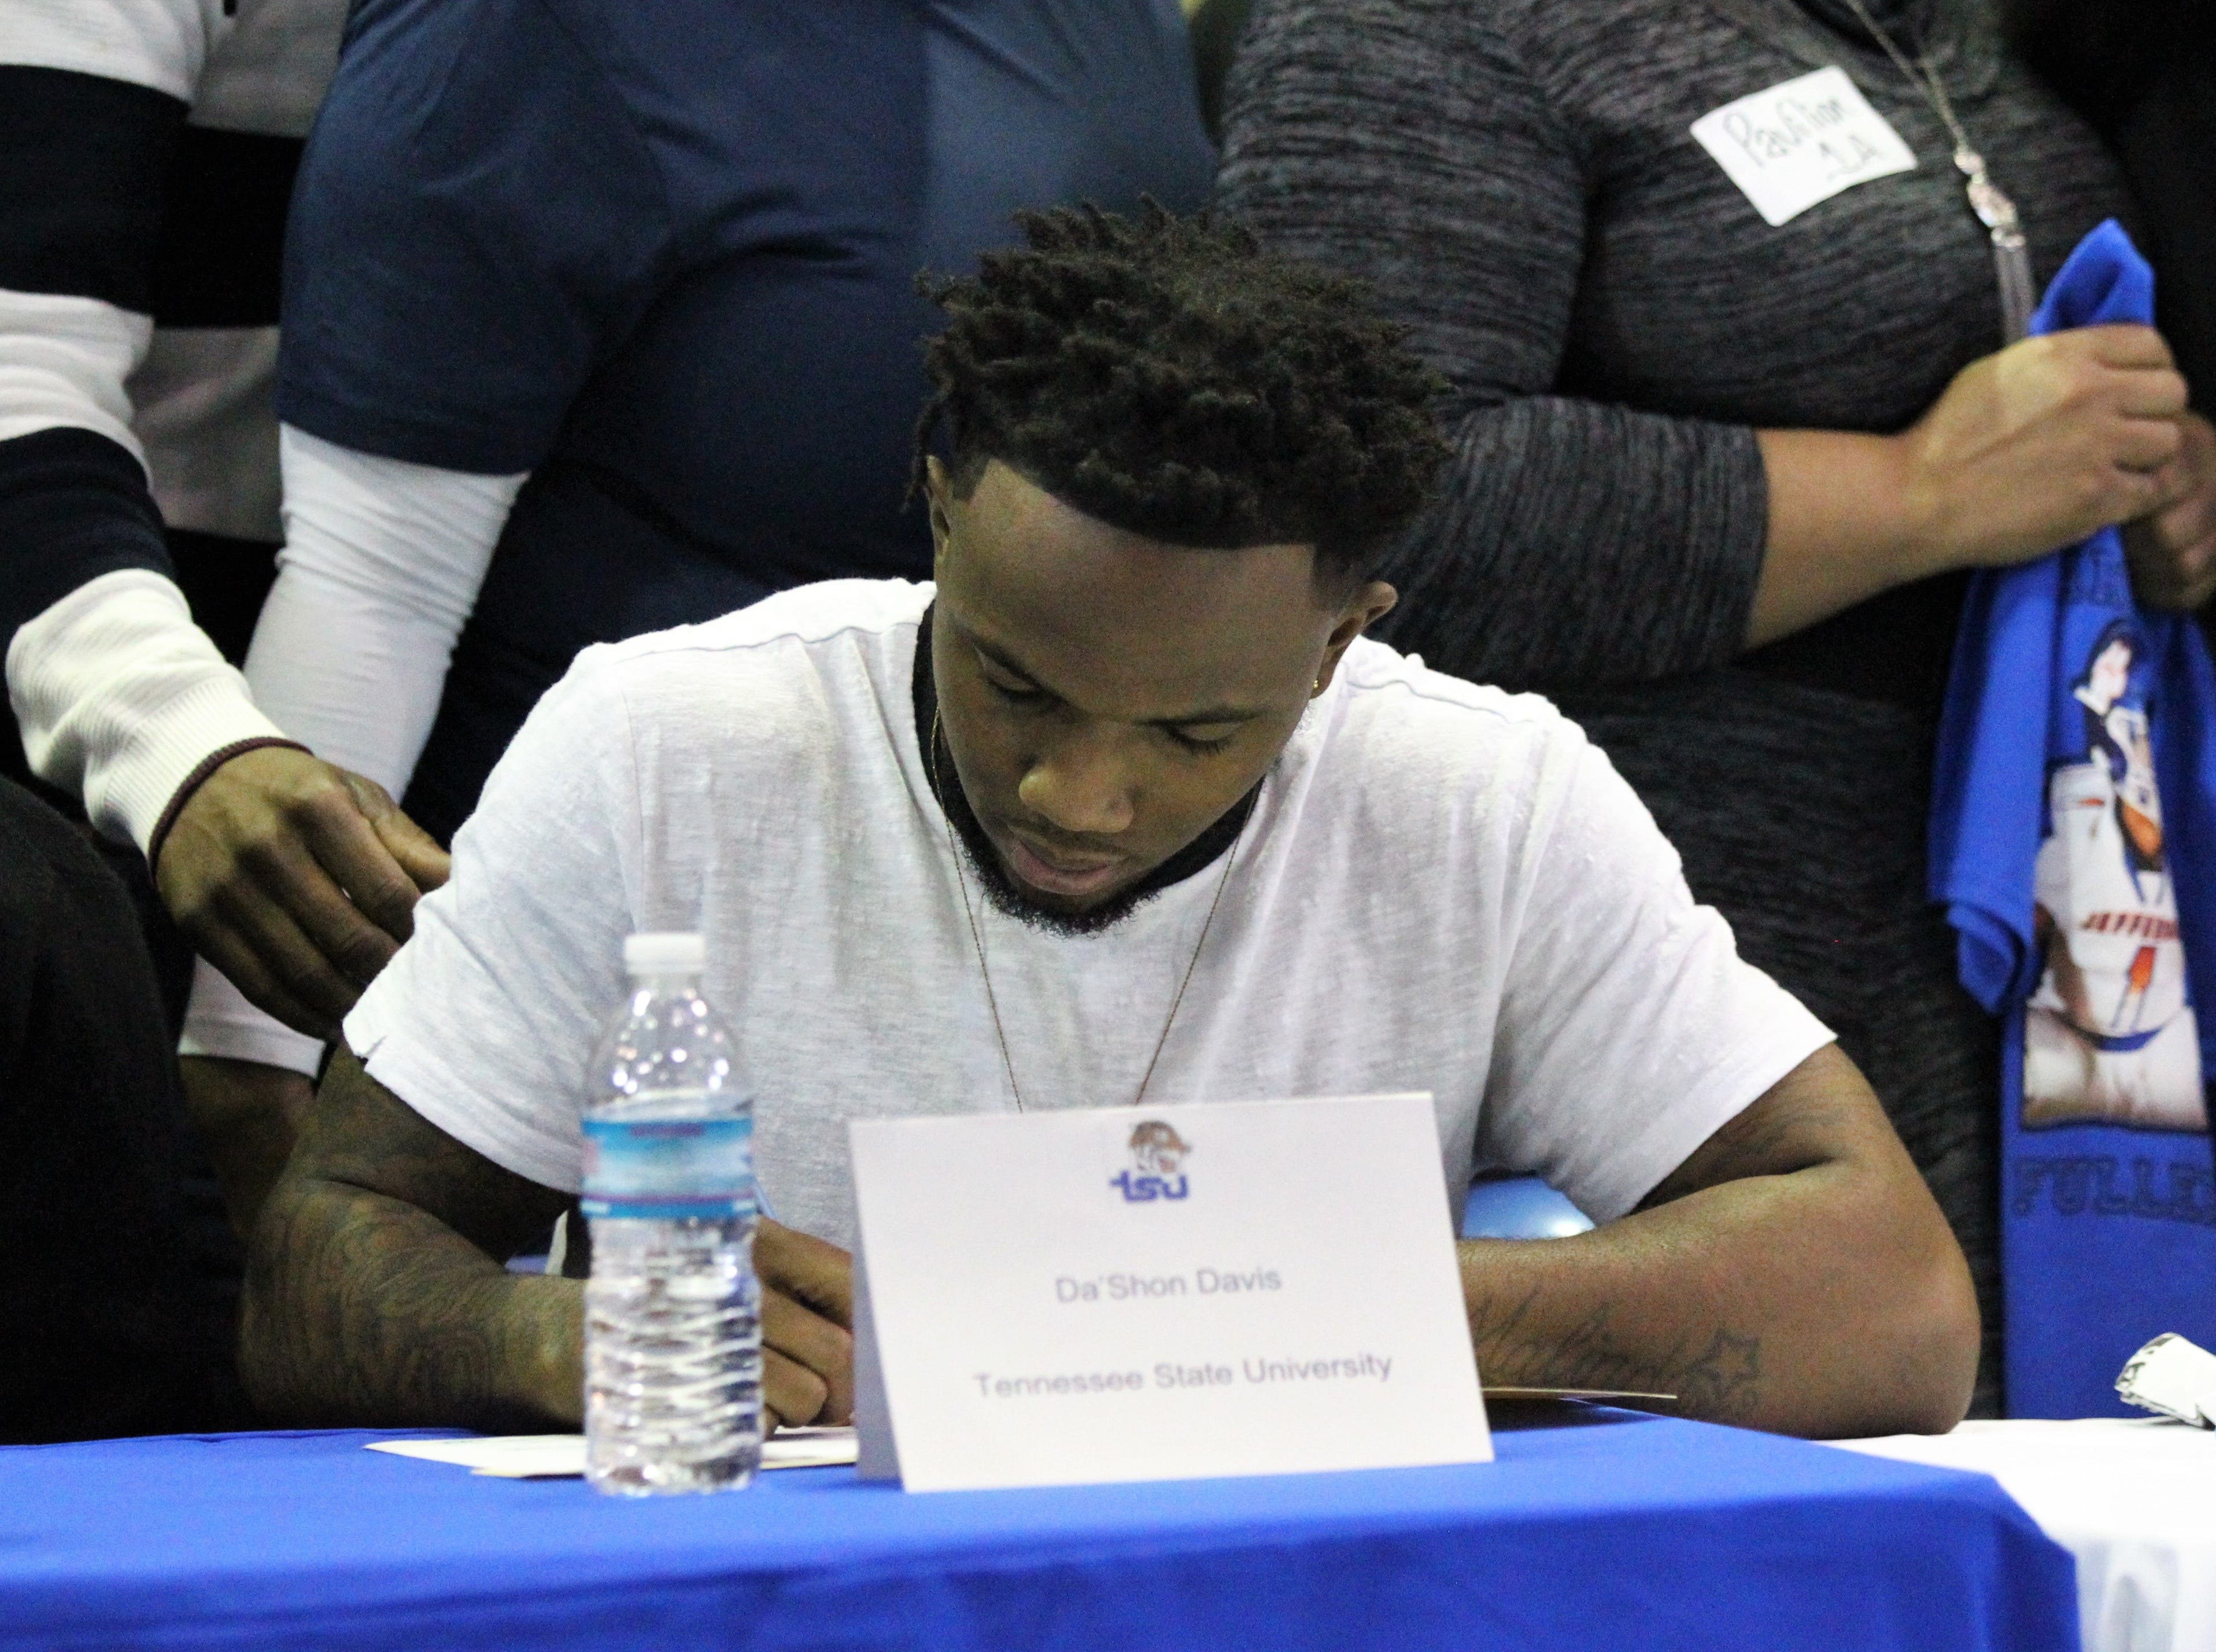 Jefferson County senior receiver Da'Shon Davis signed with Tennessee State during Jefferson County's signing day ceremony on Feb. 13, 2019.